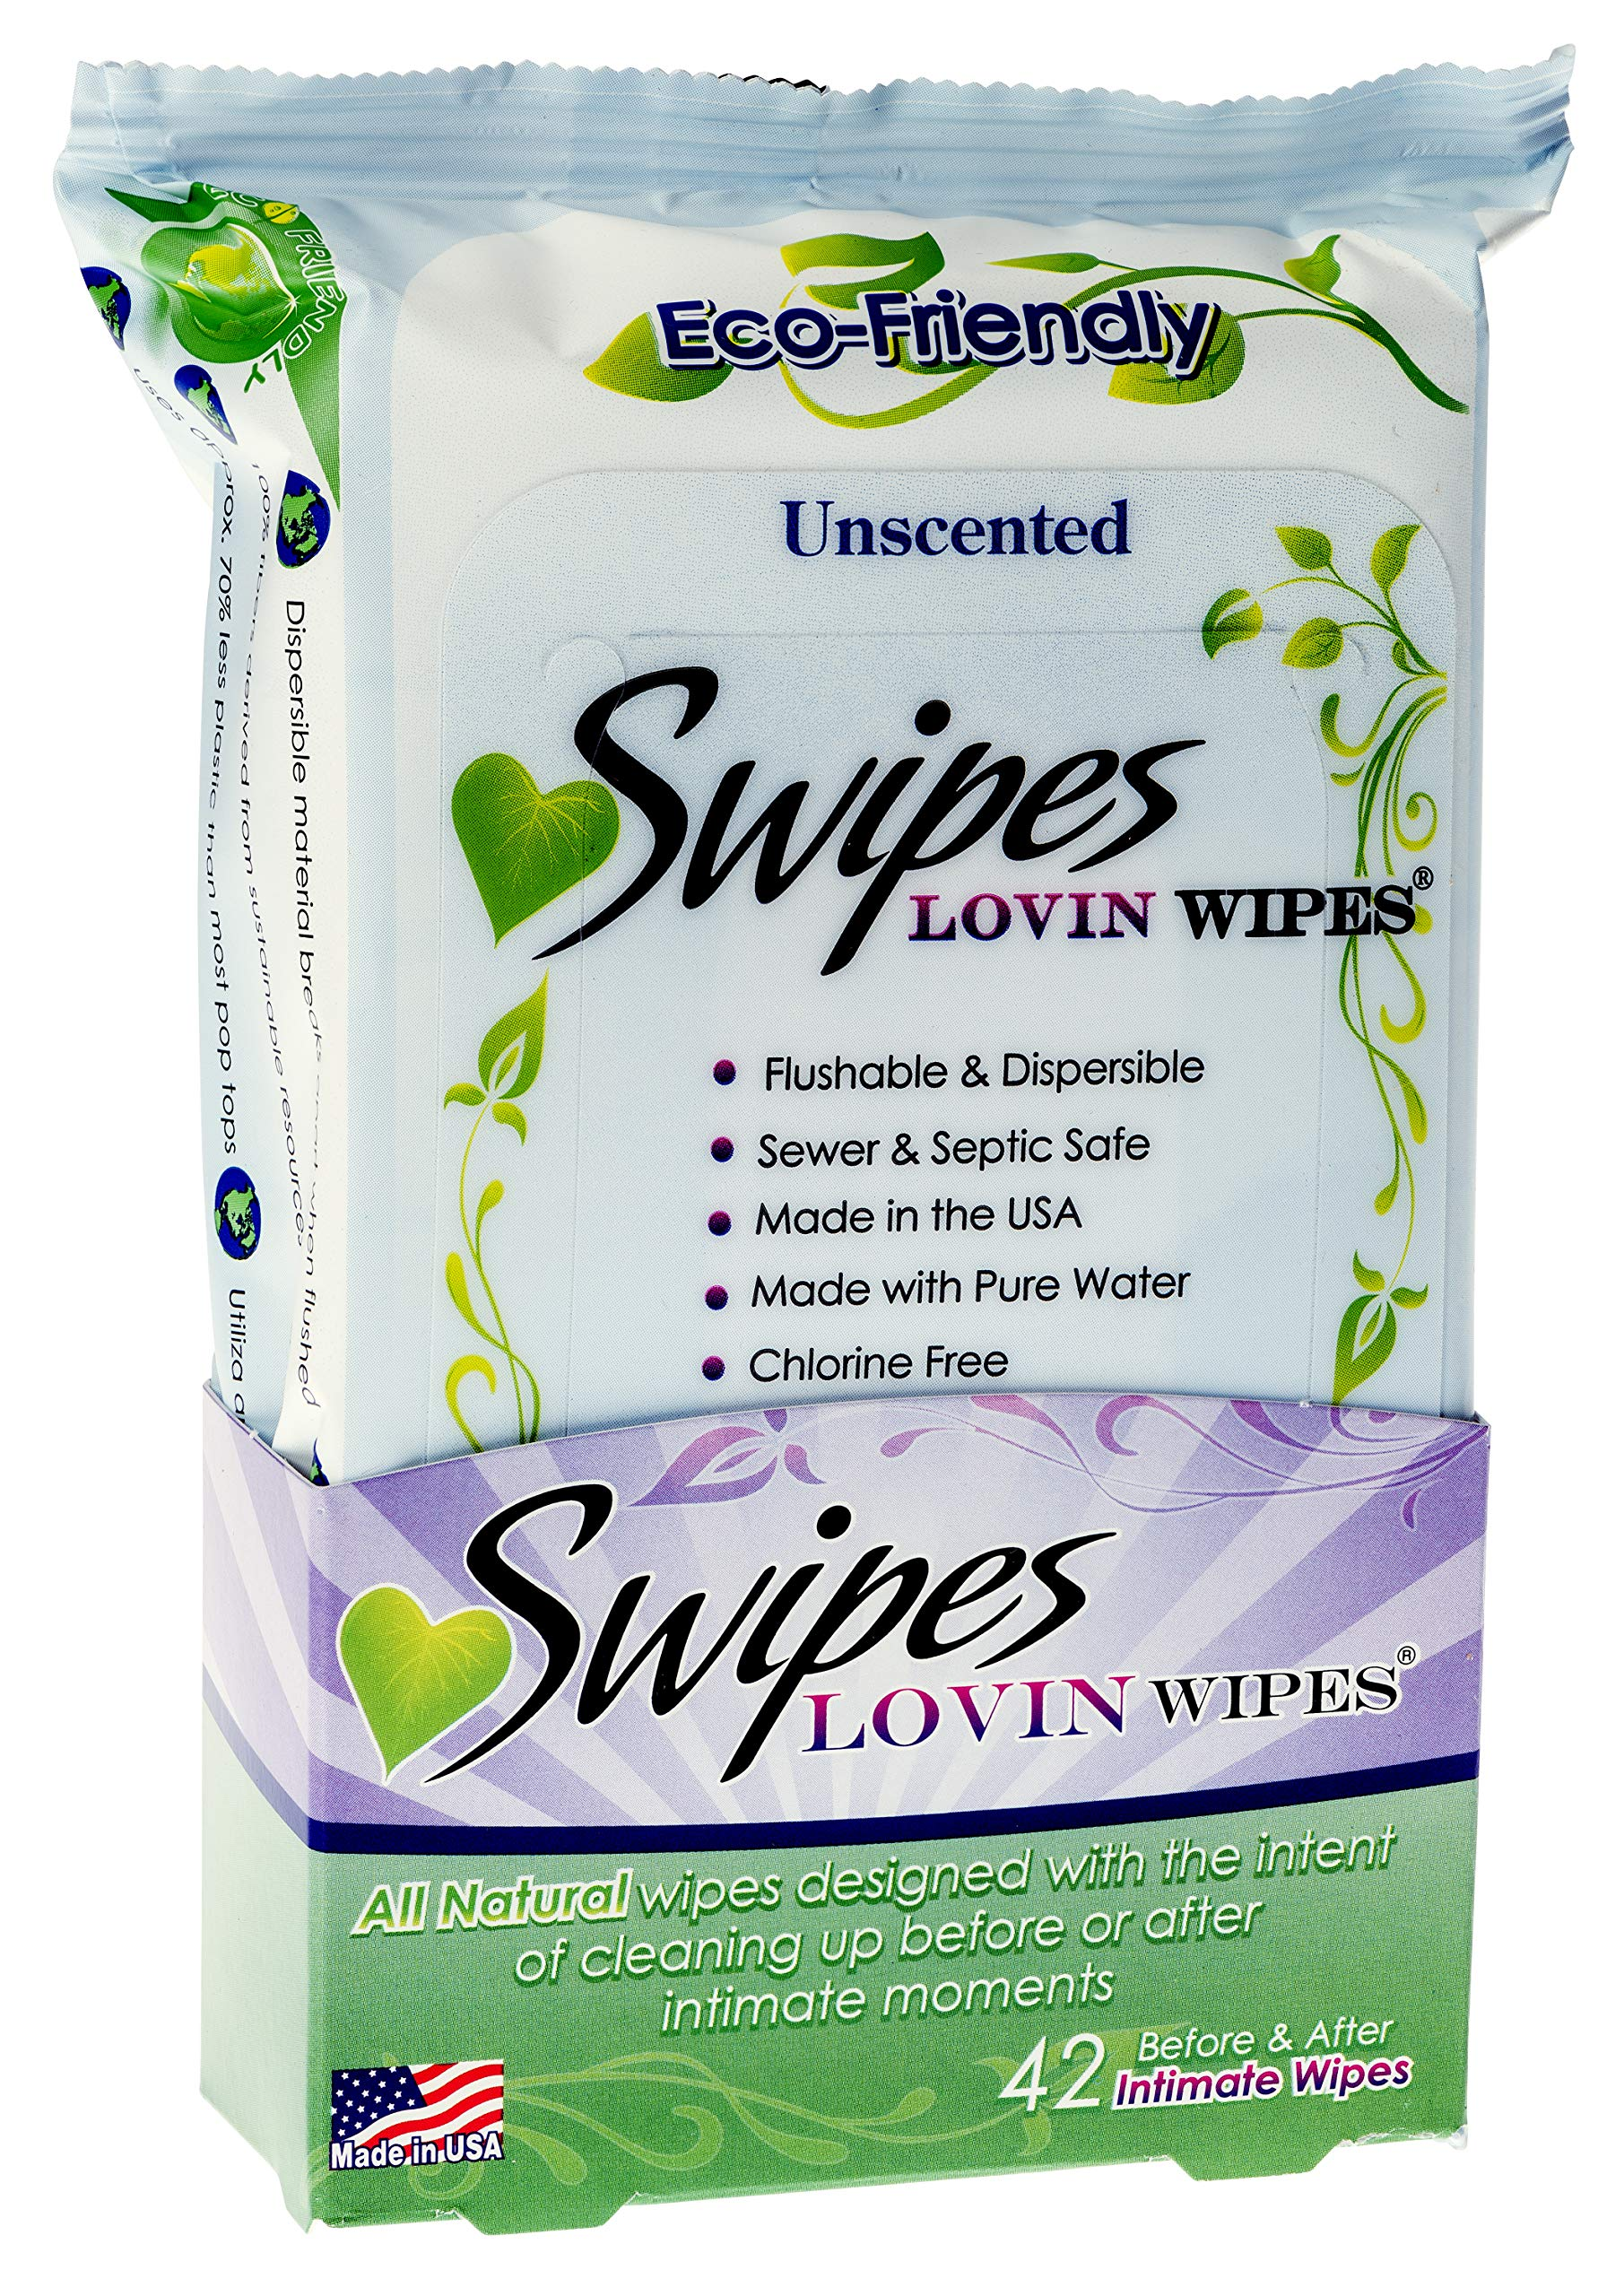 Swipes Lovin All Natural Intimate Feminine Wipes | Aloe & Vitamin E, Free of Chlorine & Dyes, pH-Balanced & Flushable | Unscented, 42 Count, 1 Pack